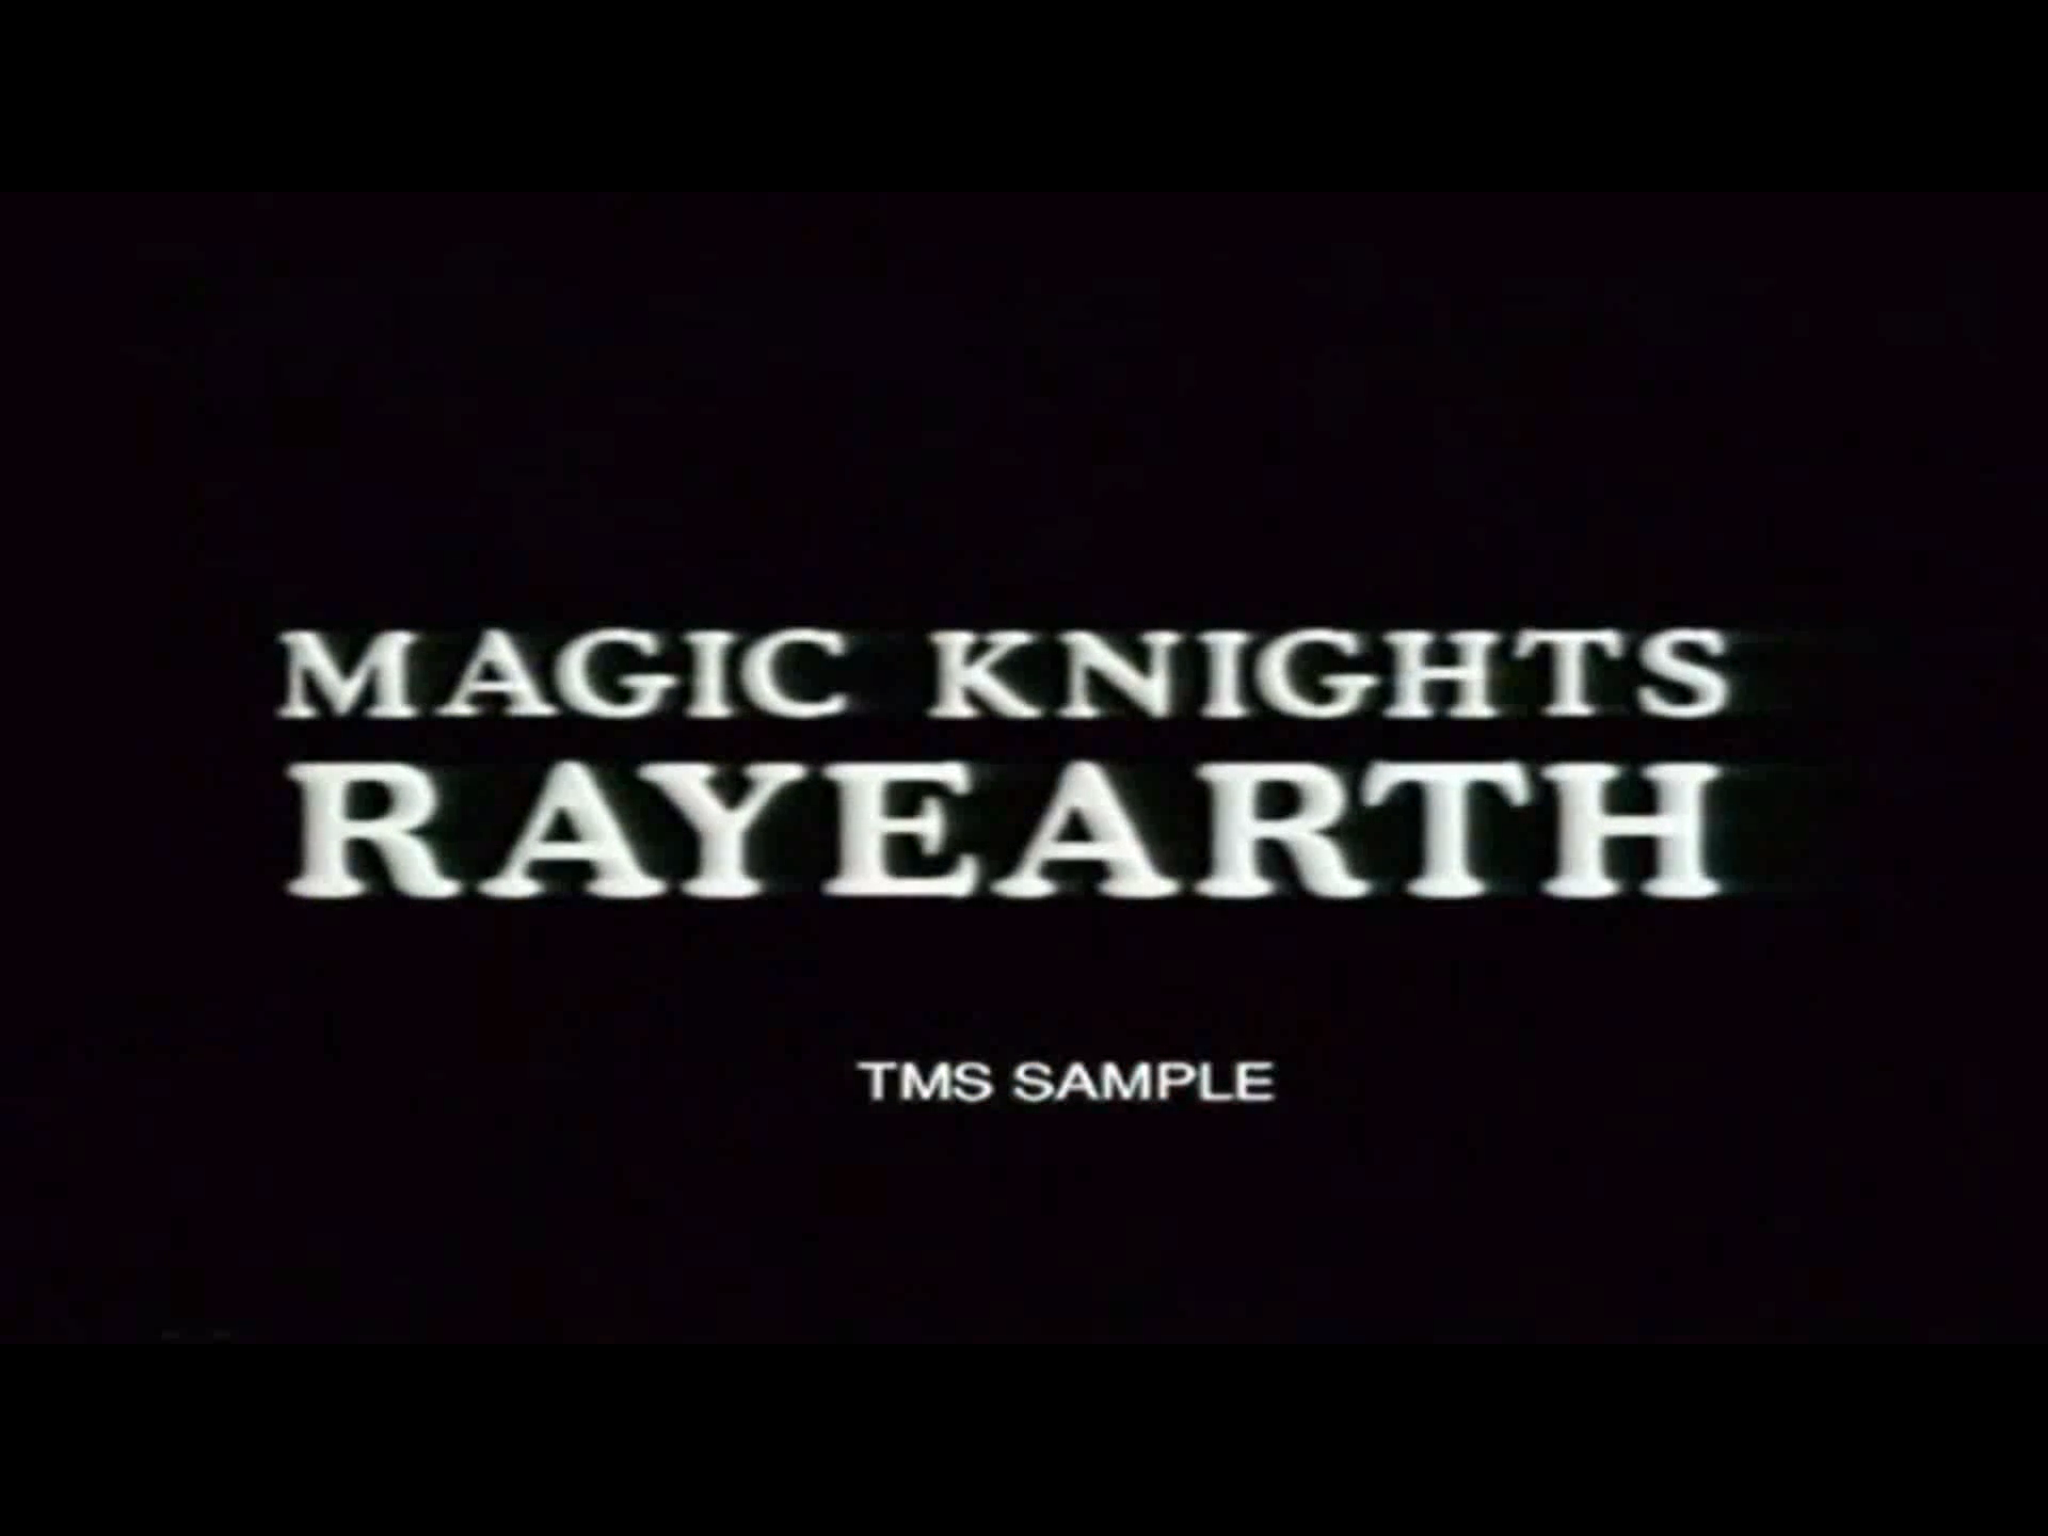 Magic knights rayearth tms.png